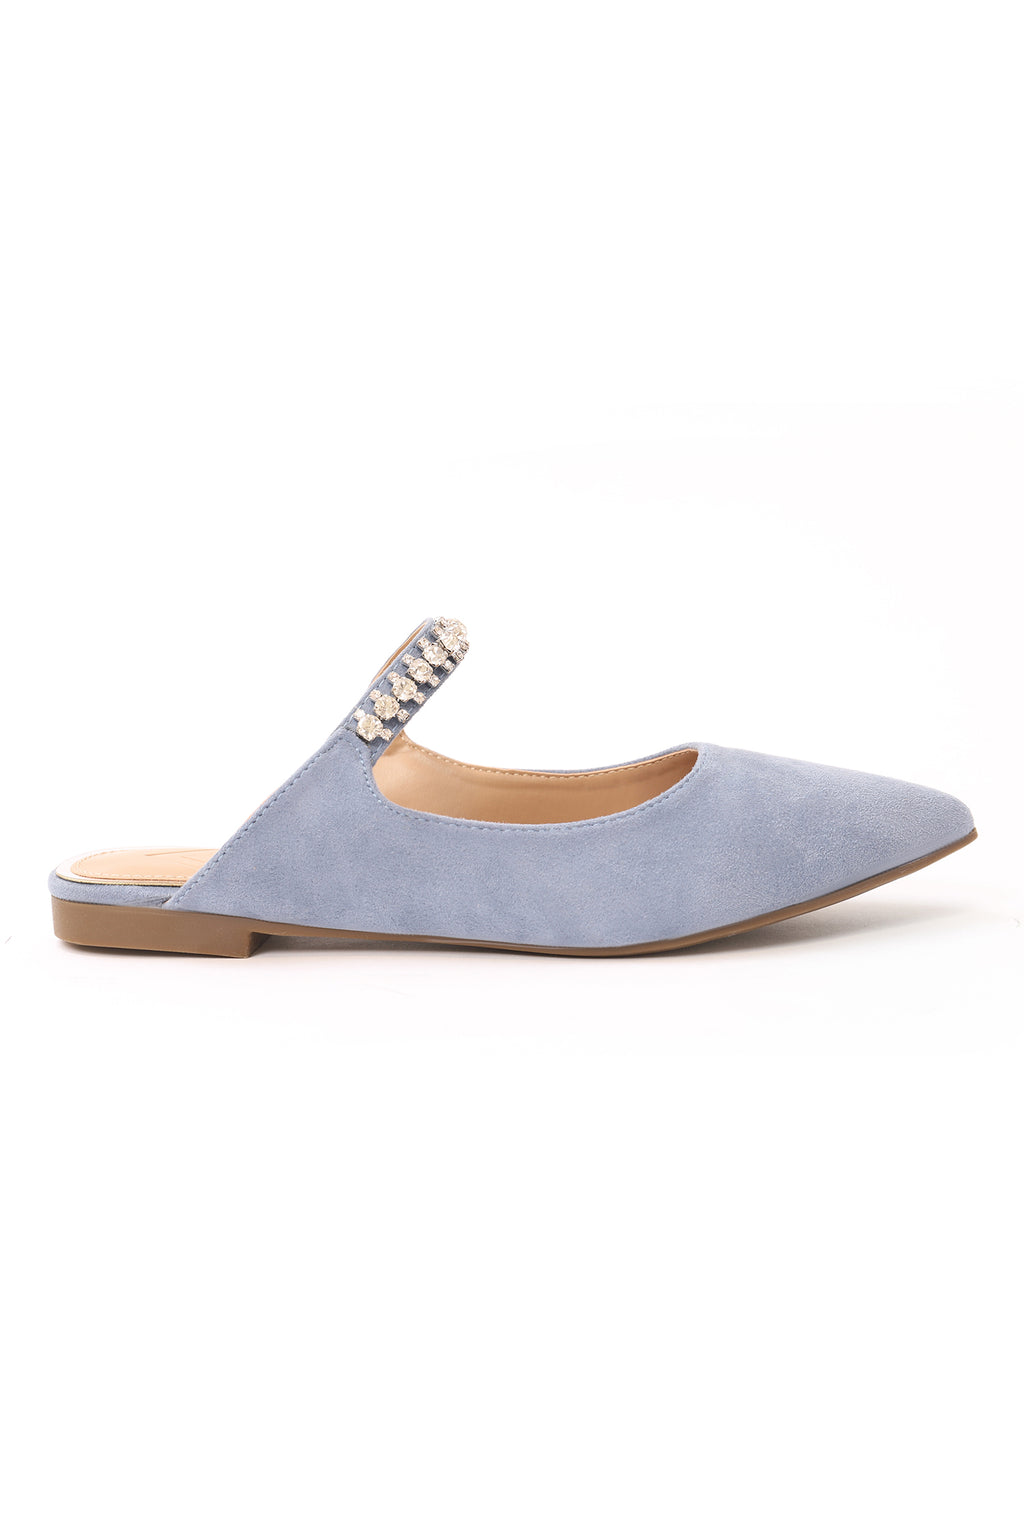 ALLURE MULES-BLUE